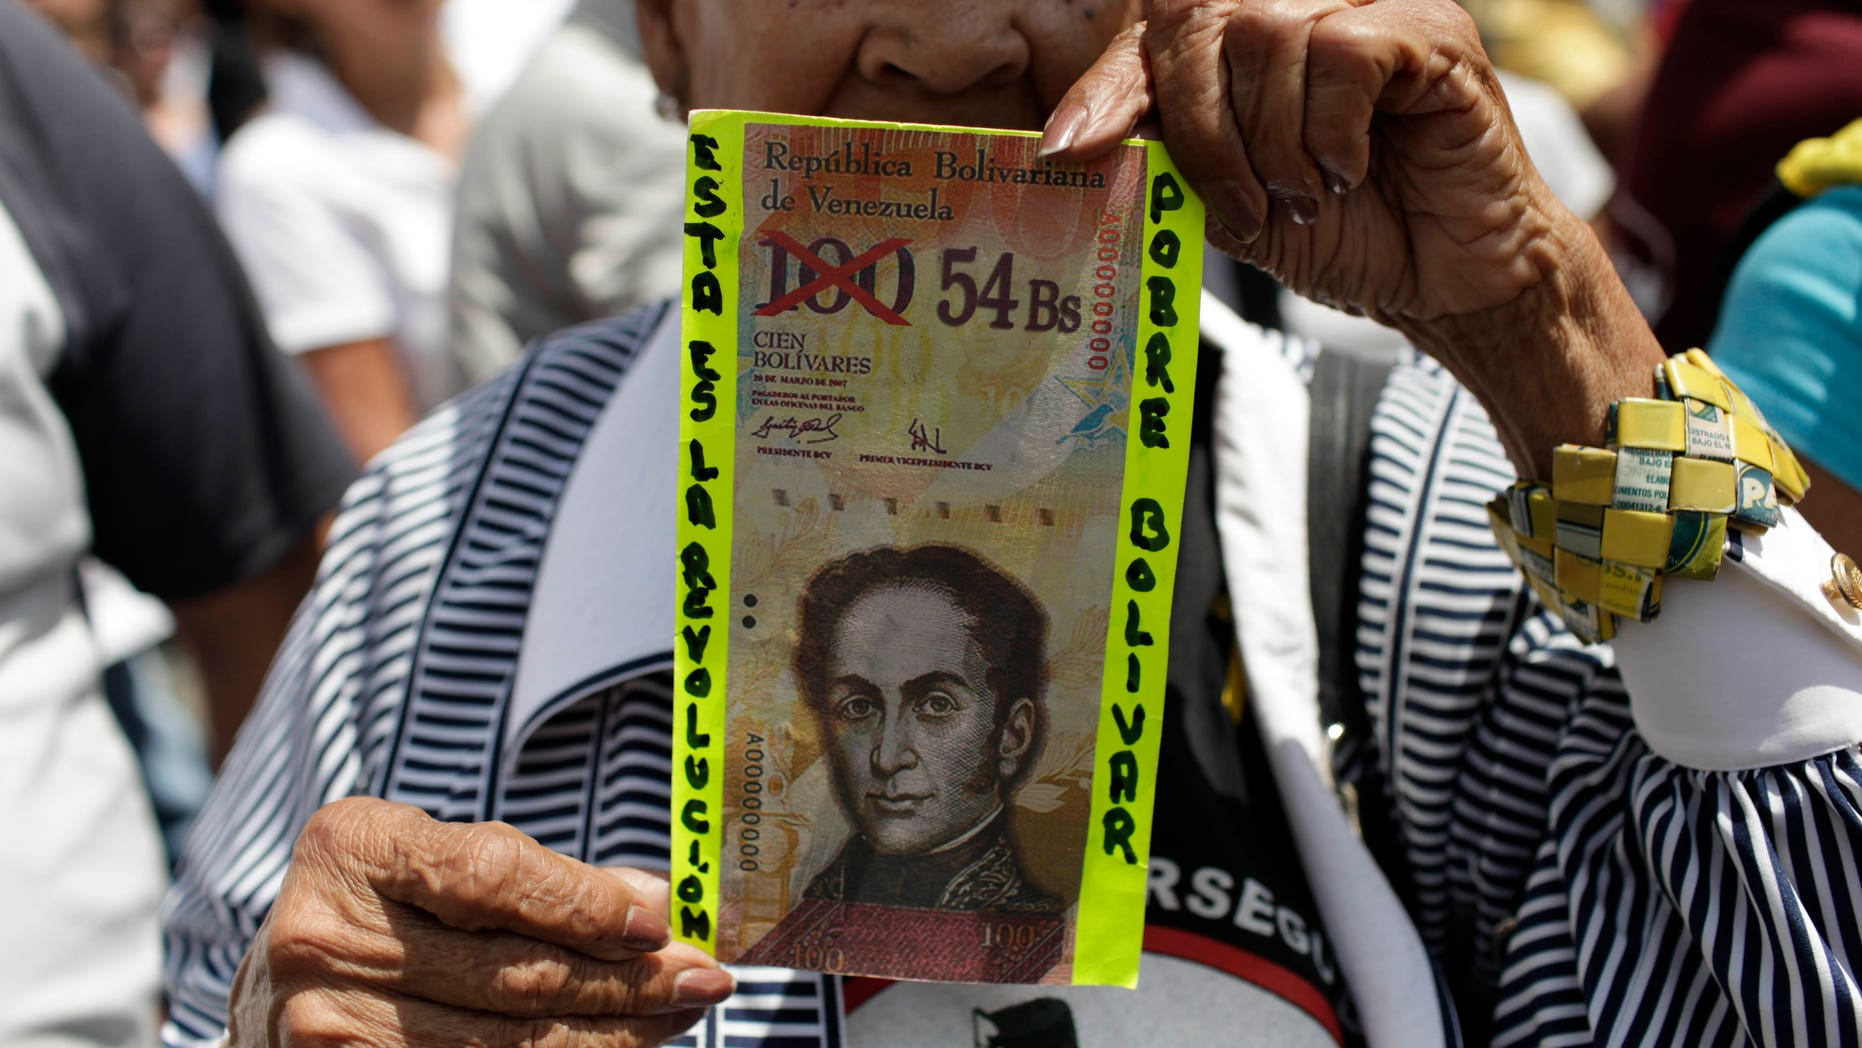 """FILE - In this Feb. 23, 2013 file photo, an anti-government protester in Caracas holds up a fake Venezuelan banknote that reads in Spanish, """"This is the revolution. Poor Bolivar,"""" with the value of 100 crossed out and 54 written next to it. Venezuelans have been scrambling for dollars as their bolivar currency is in free fall, selling on the black market for a tenth its official value. In response, the government is trying to block access to websites that Venezuelans use to track the black market exchange rate. (AP Photo/Ariana Cubillos, File)"""